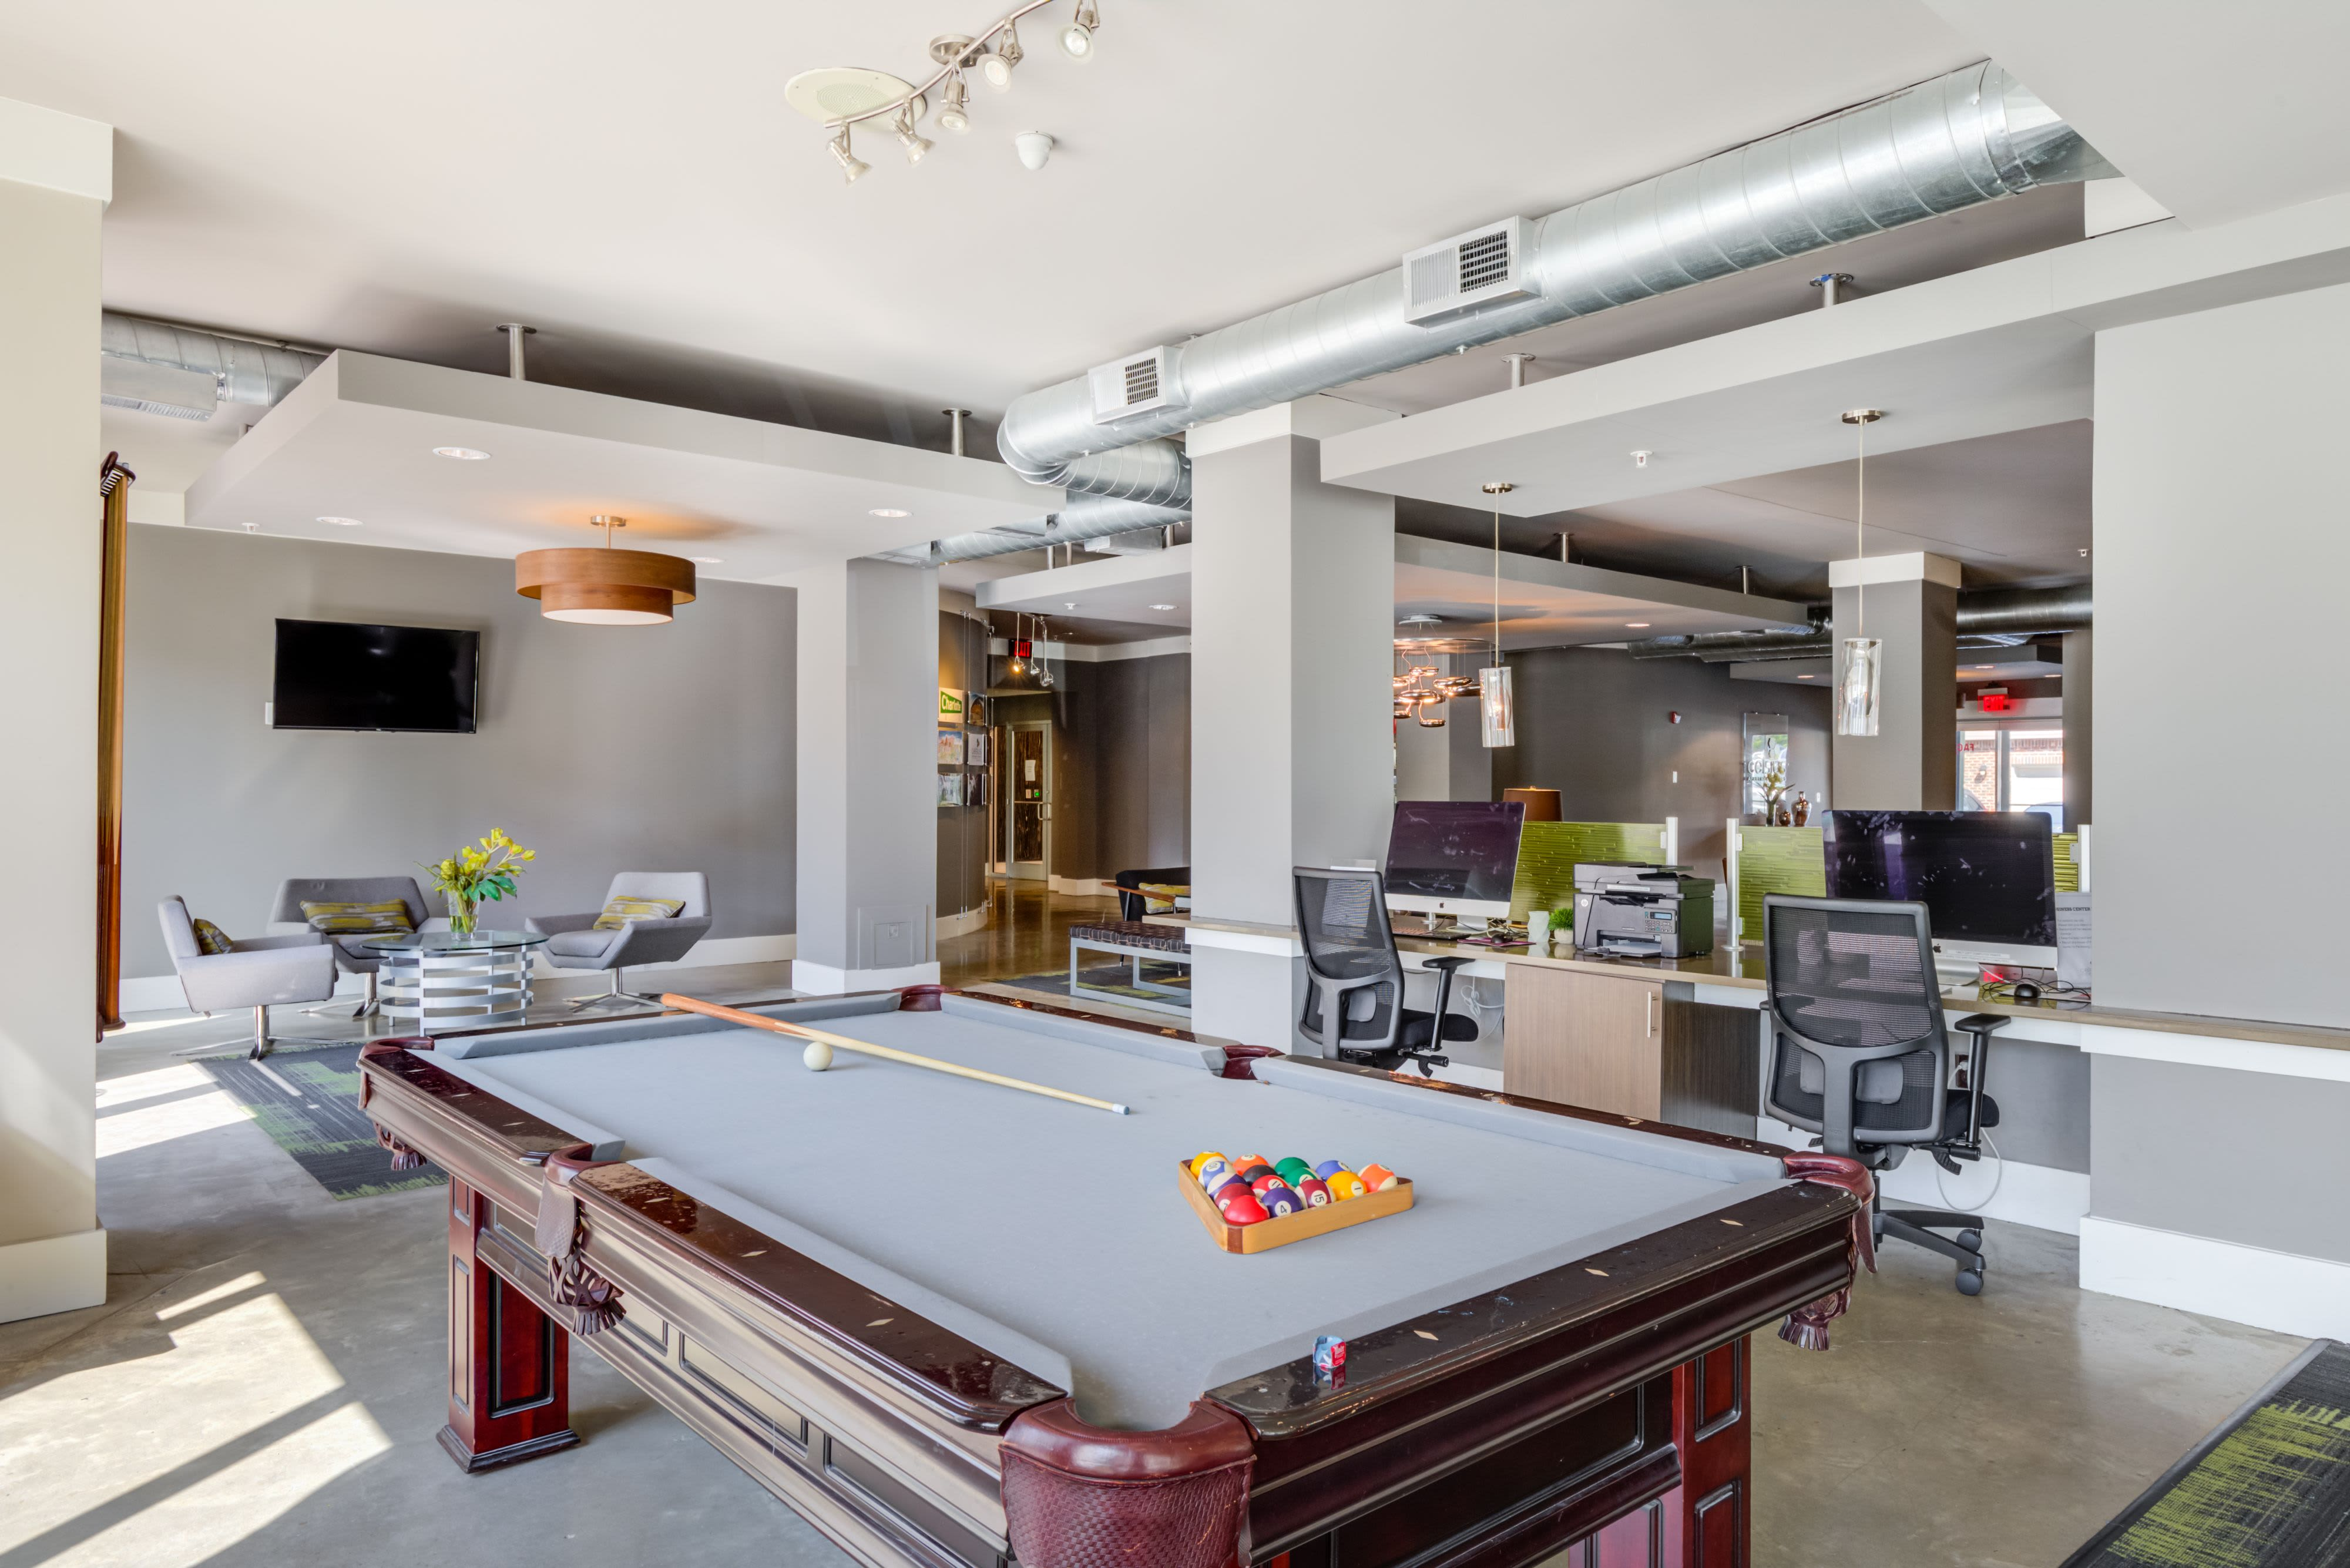 Billiards table at Celsius Apartment Homes in Charlotte, North Carolina